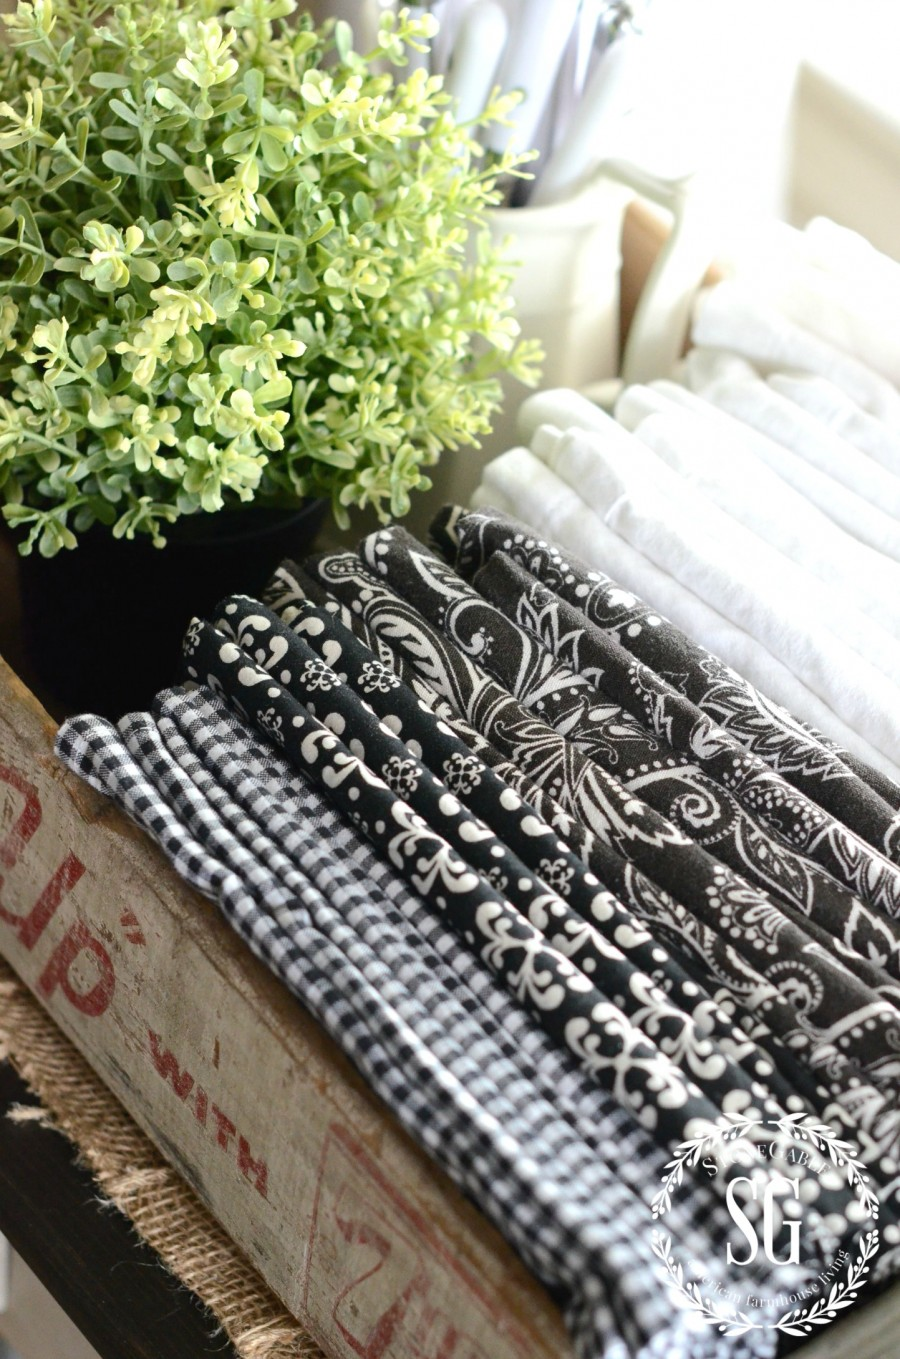 STORING THINGS FARMHOUSE STYLE-napkins in a crate-flatware-stonegableblog.com